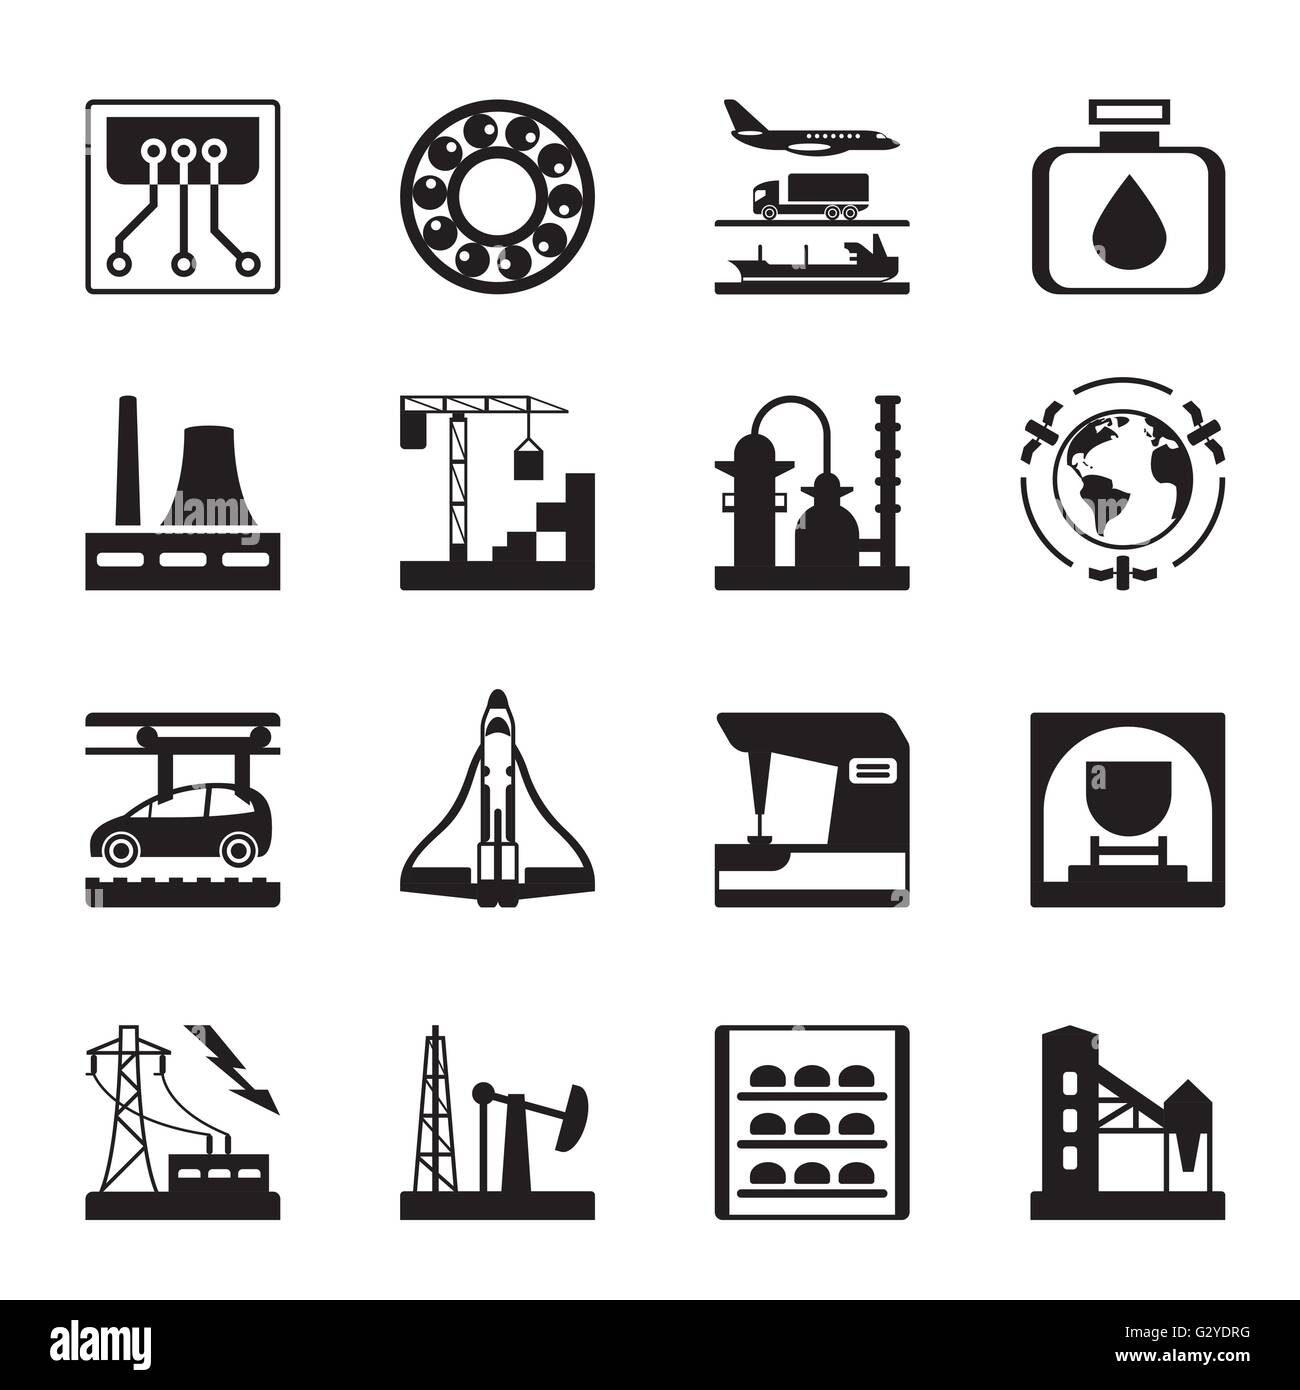 Plants for light and heavy industry - vector illustration - Stock Vector